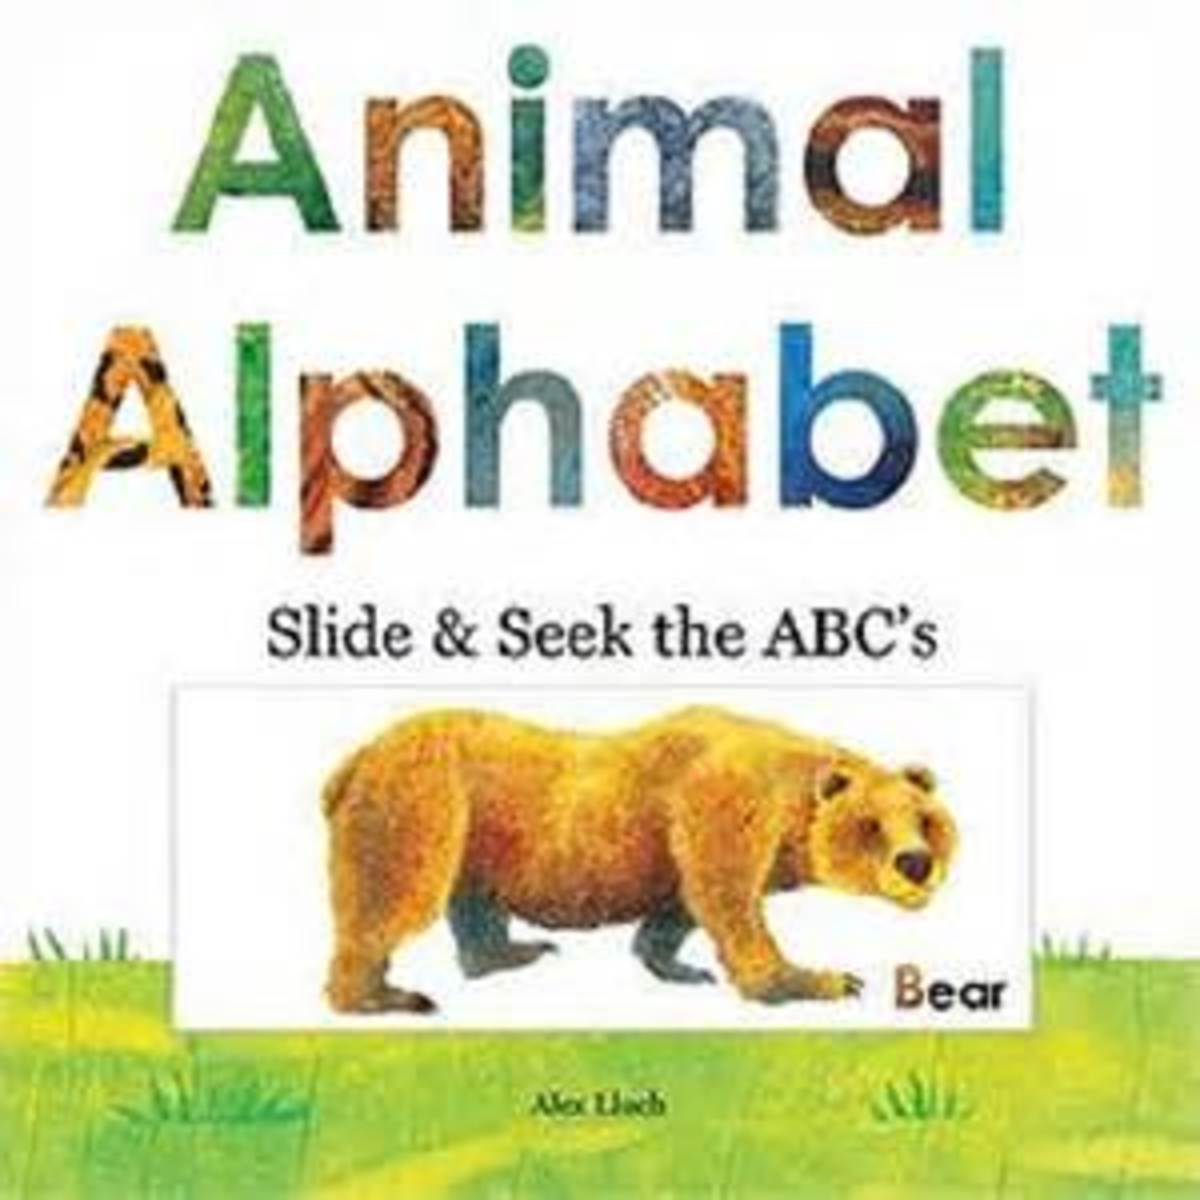 25-awesome-kids-books-for-ages-2-and-up